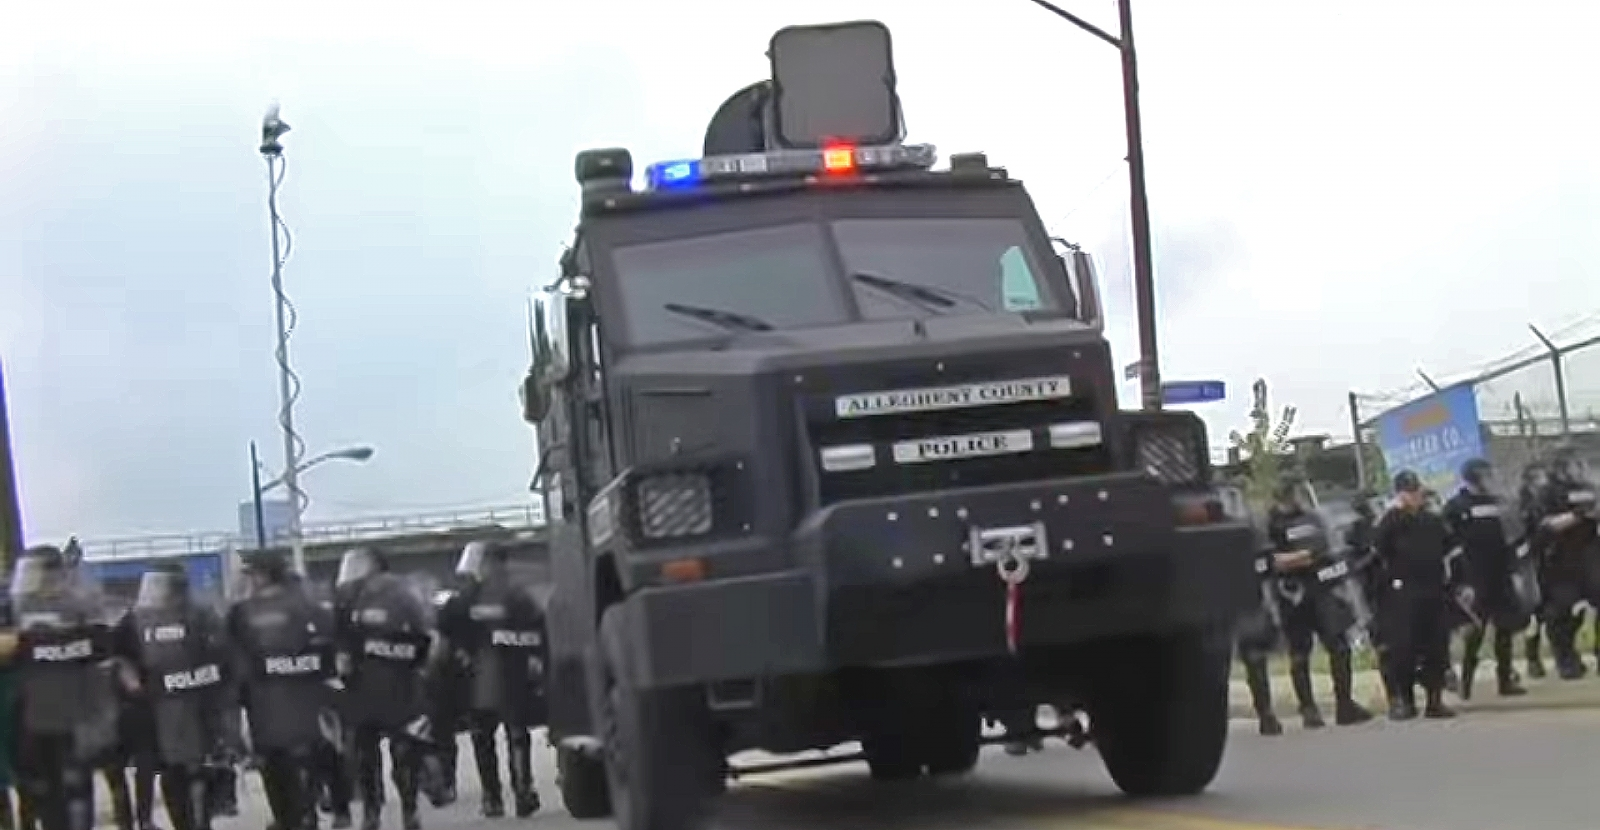 LRAD sound cannons are being used on protesters in Ferguson, similar to this one used at the G20 protests in Pittsburgh in 2009